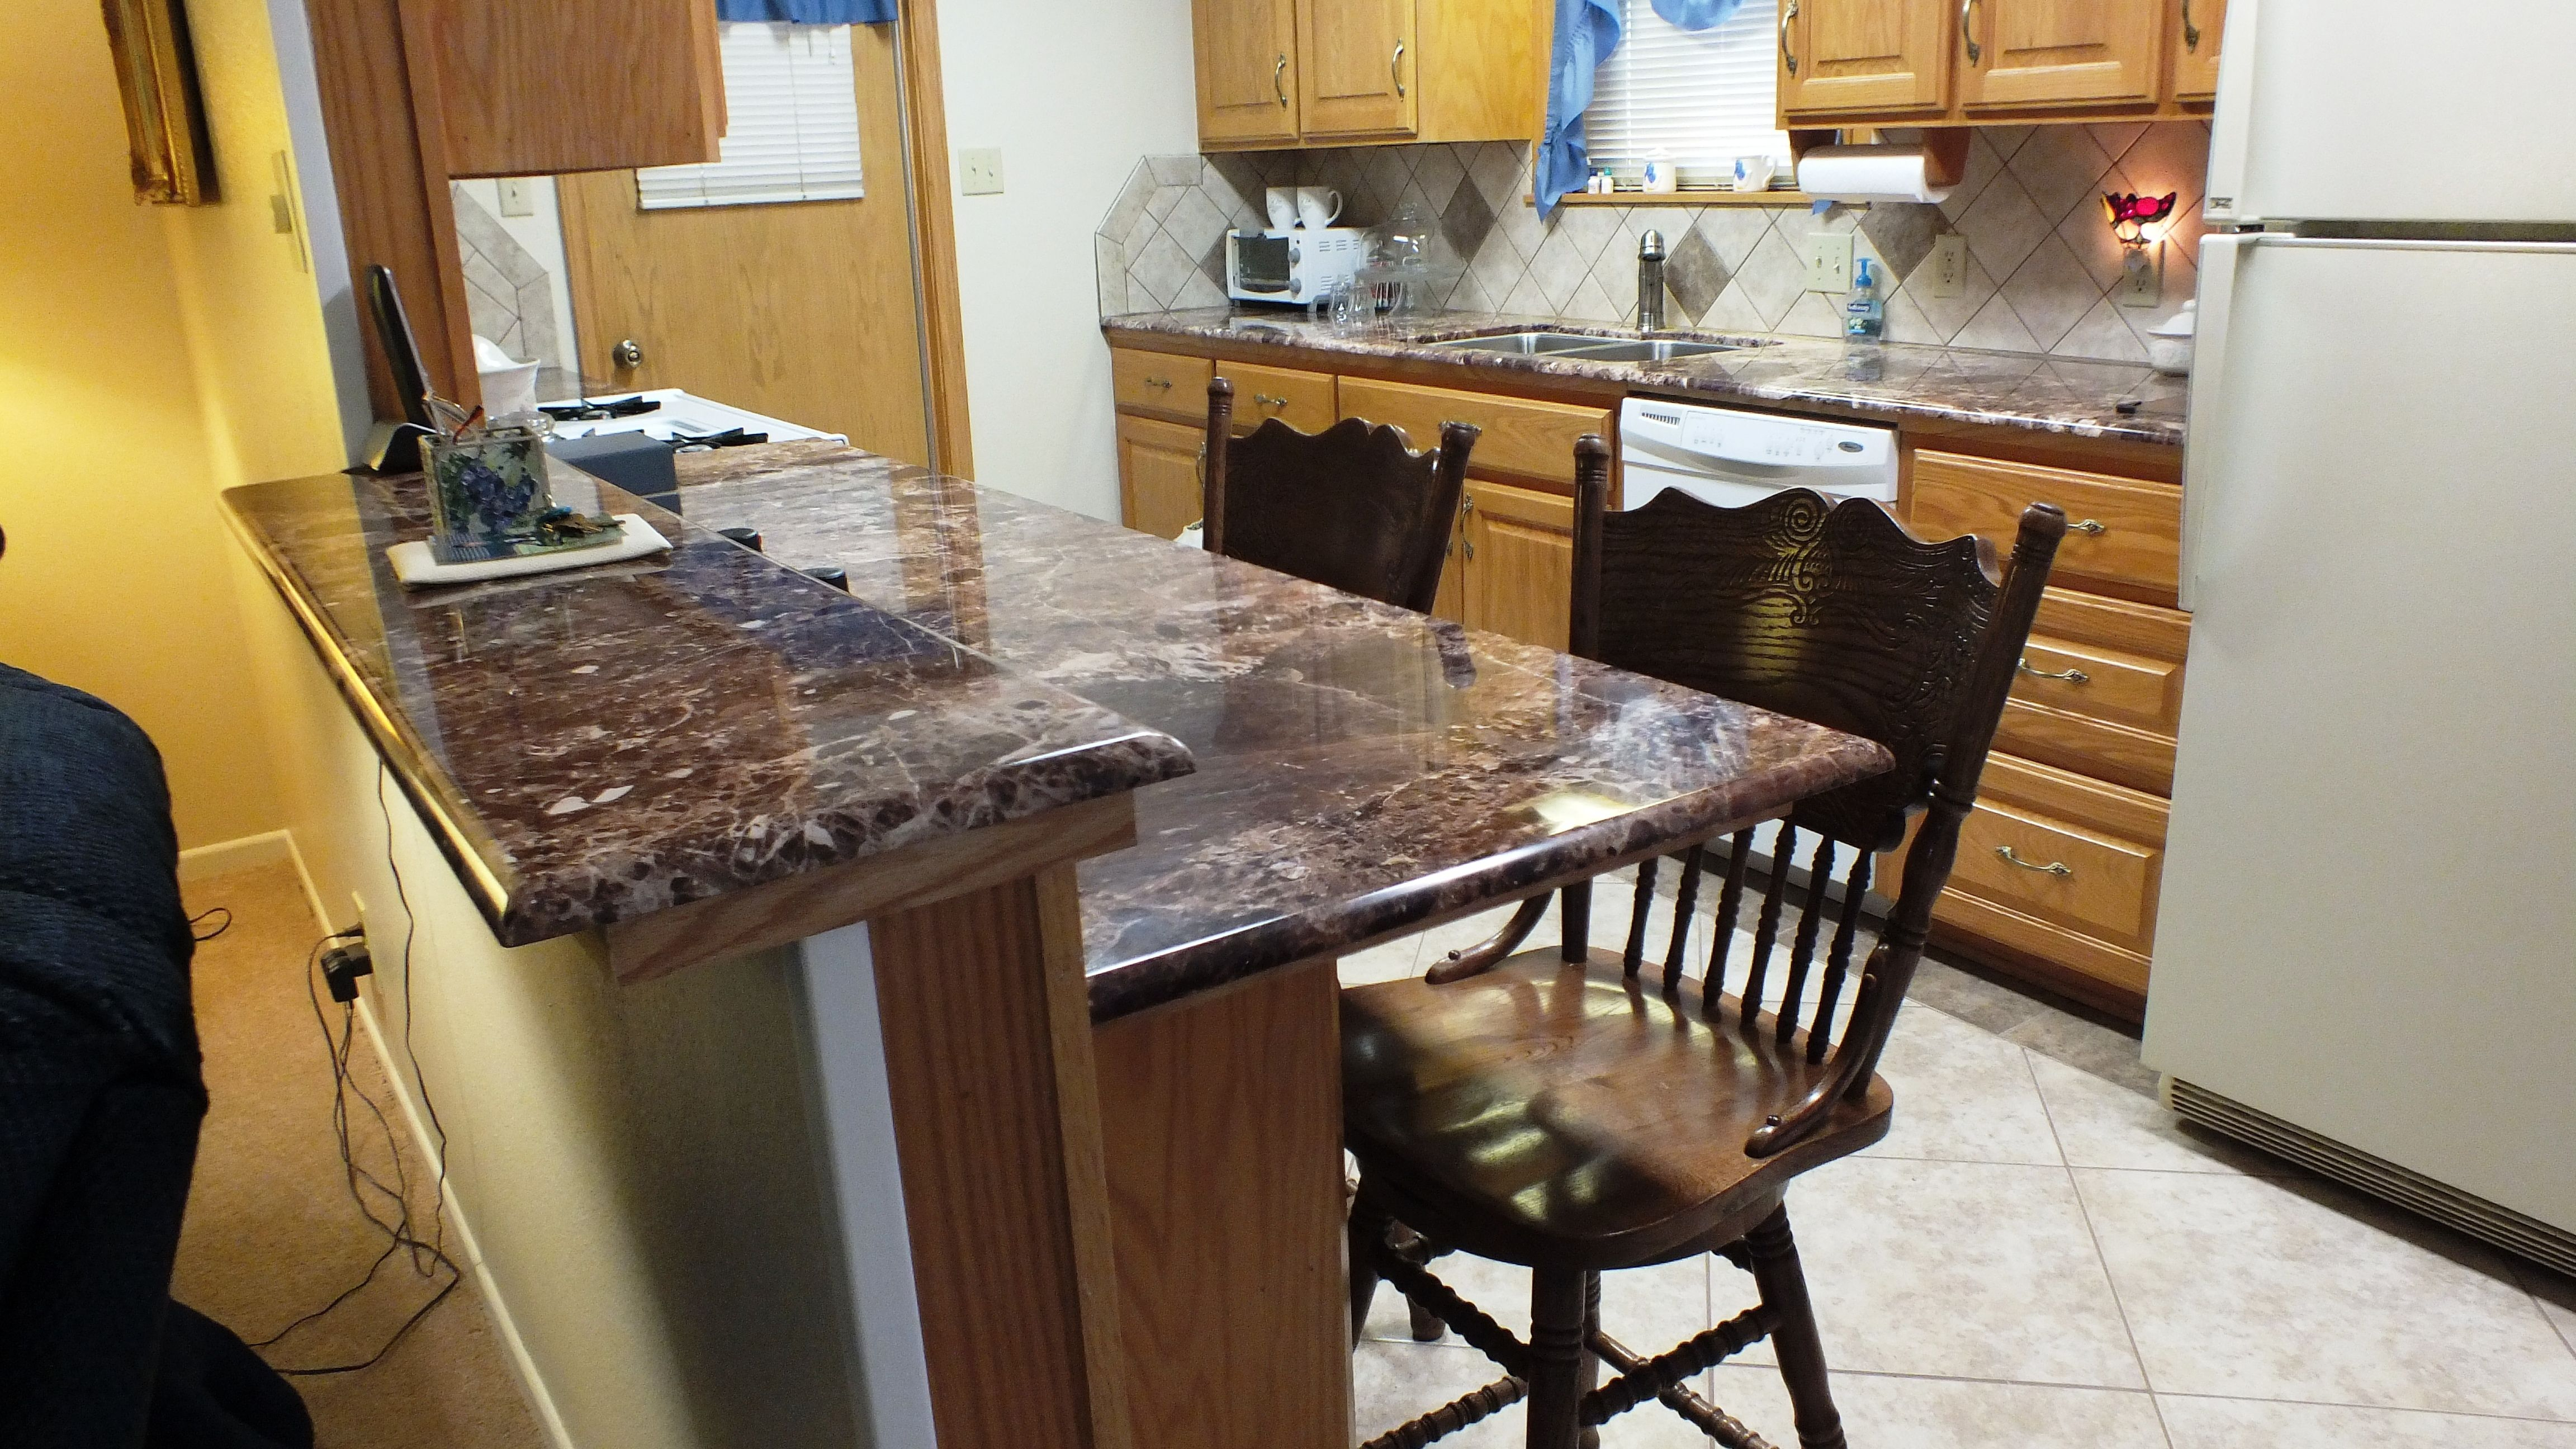 Paradiso Granite Countertops Breccia Paradiso Countertops And Bar Tops With A Demi